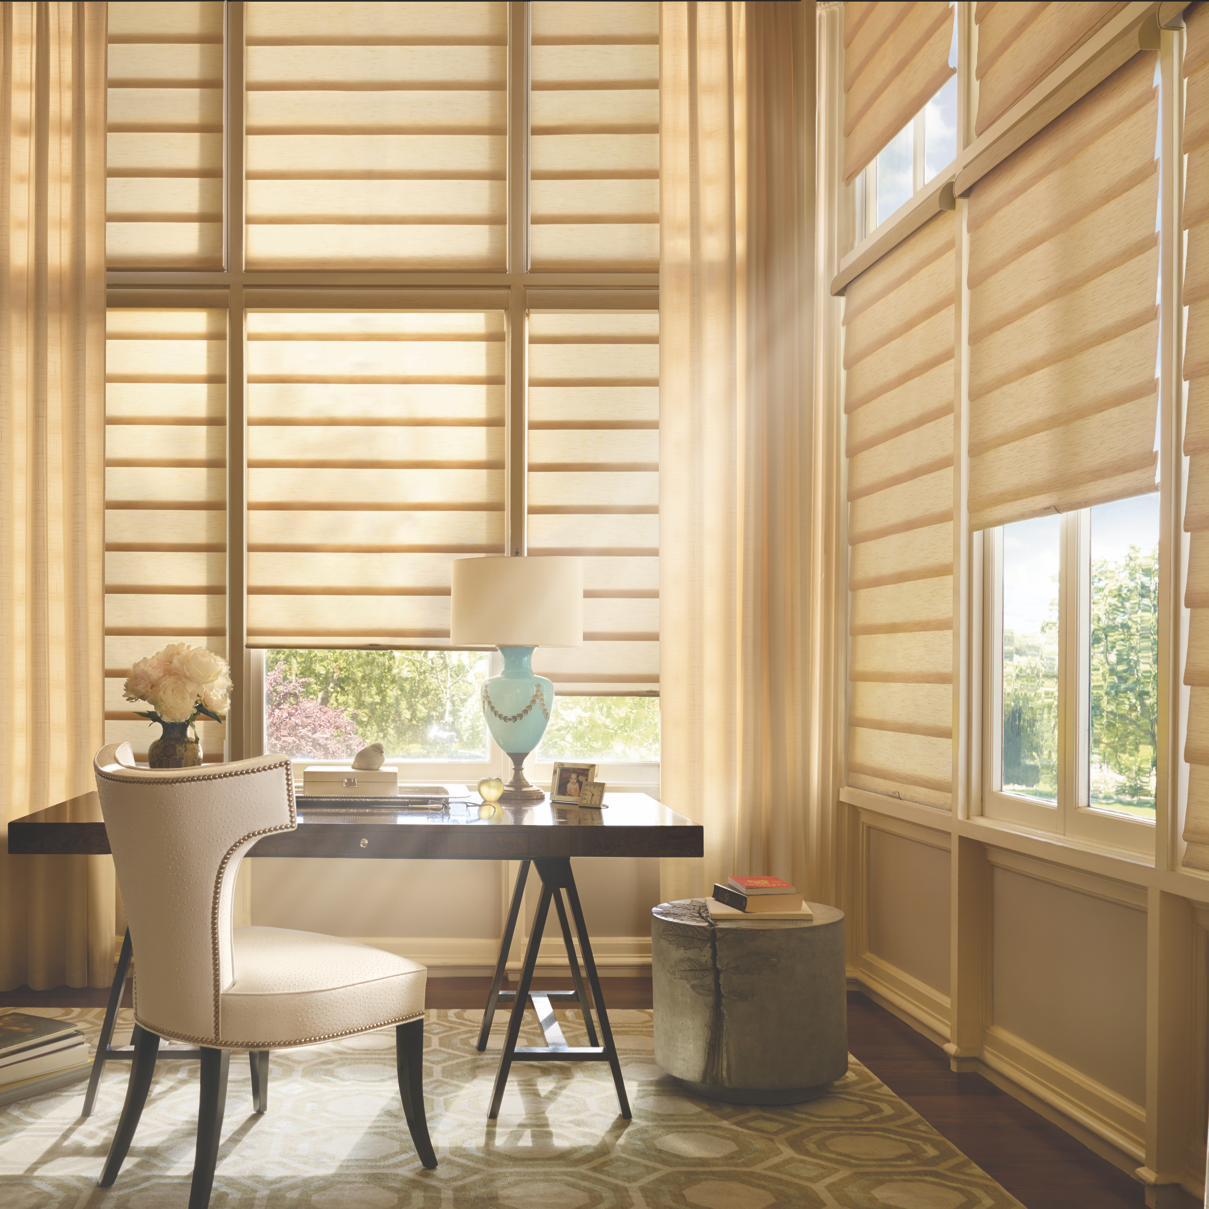 Blinds/Shades - In the past, blinds and shades were for considered only for functional purposes. Today's product selection offer many unique choices in features, fabrics colors and operating systems. While frequently combined with custom drapery treatments its not always necessary as they are a design statement all their own.We carry Comfortex Window Fashions and the full Hunter Douglas product line.